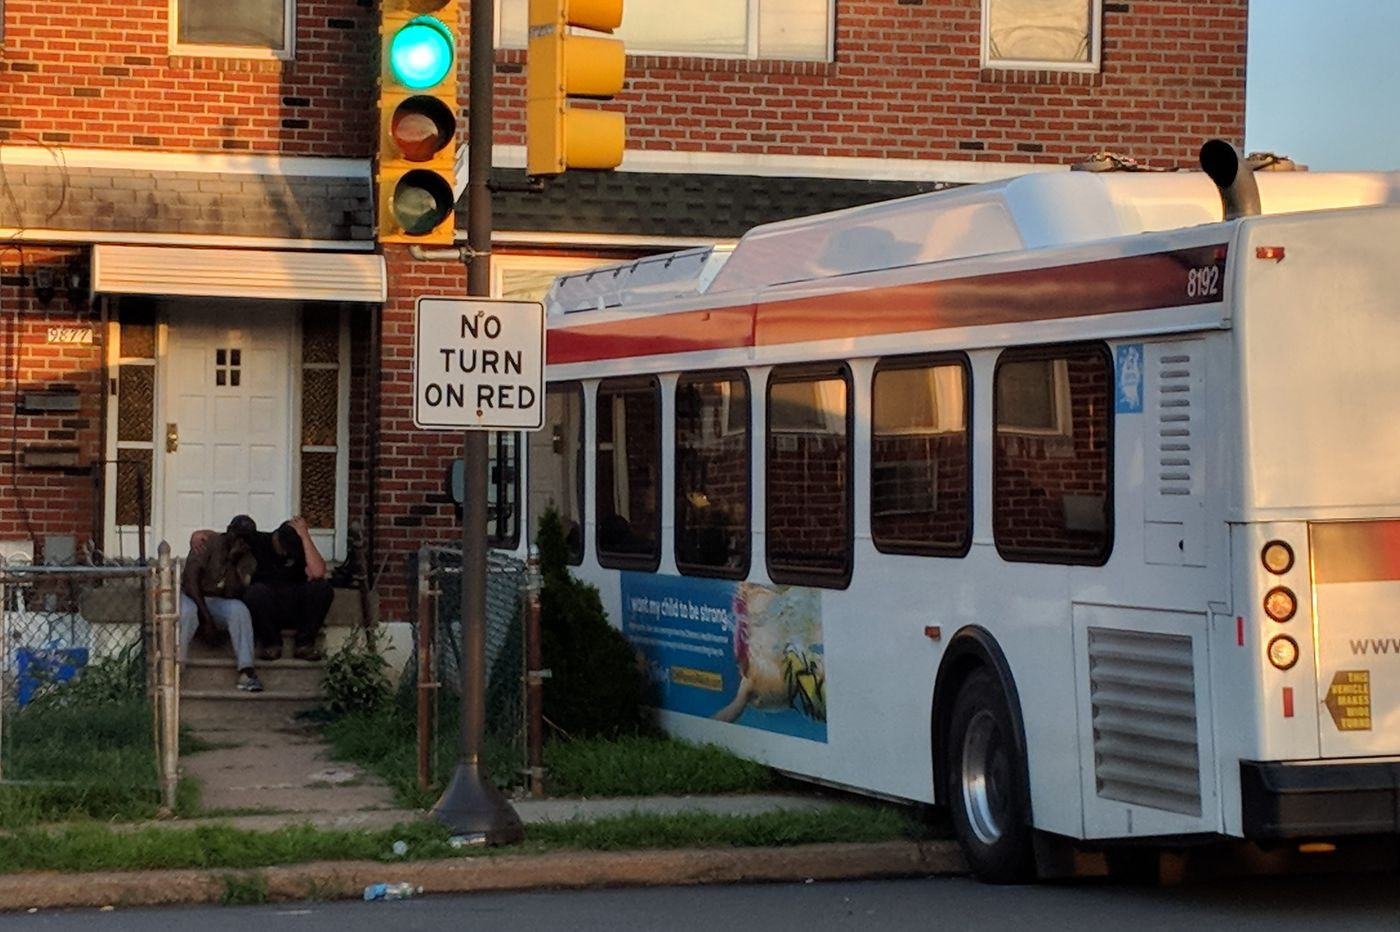 Police ID man killed when SEPTA bus crashed into home, investigation continues